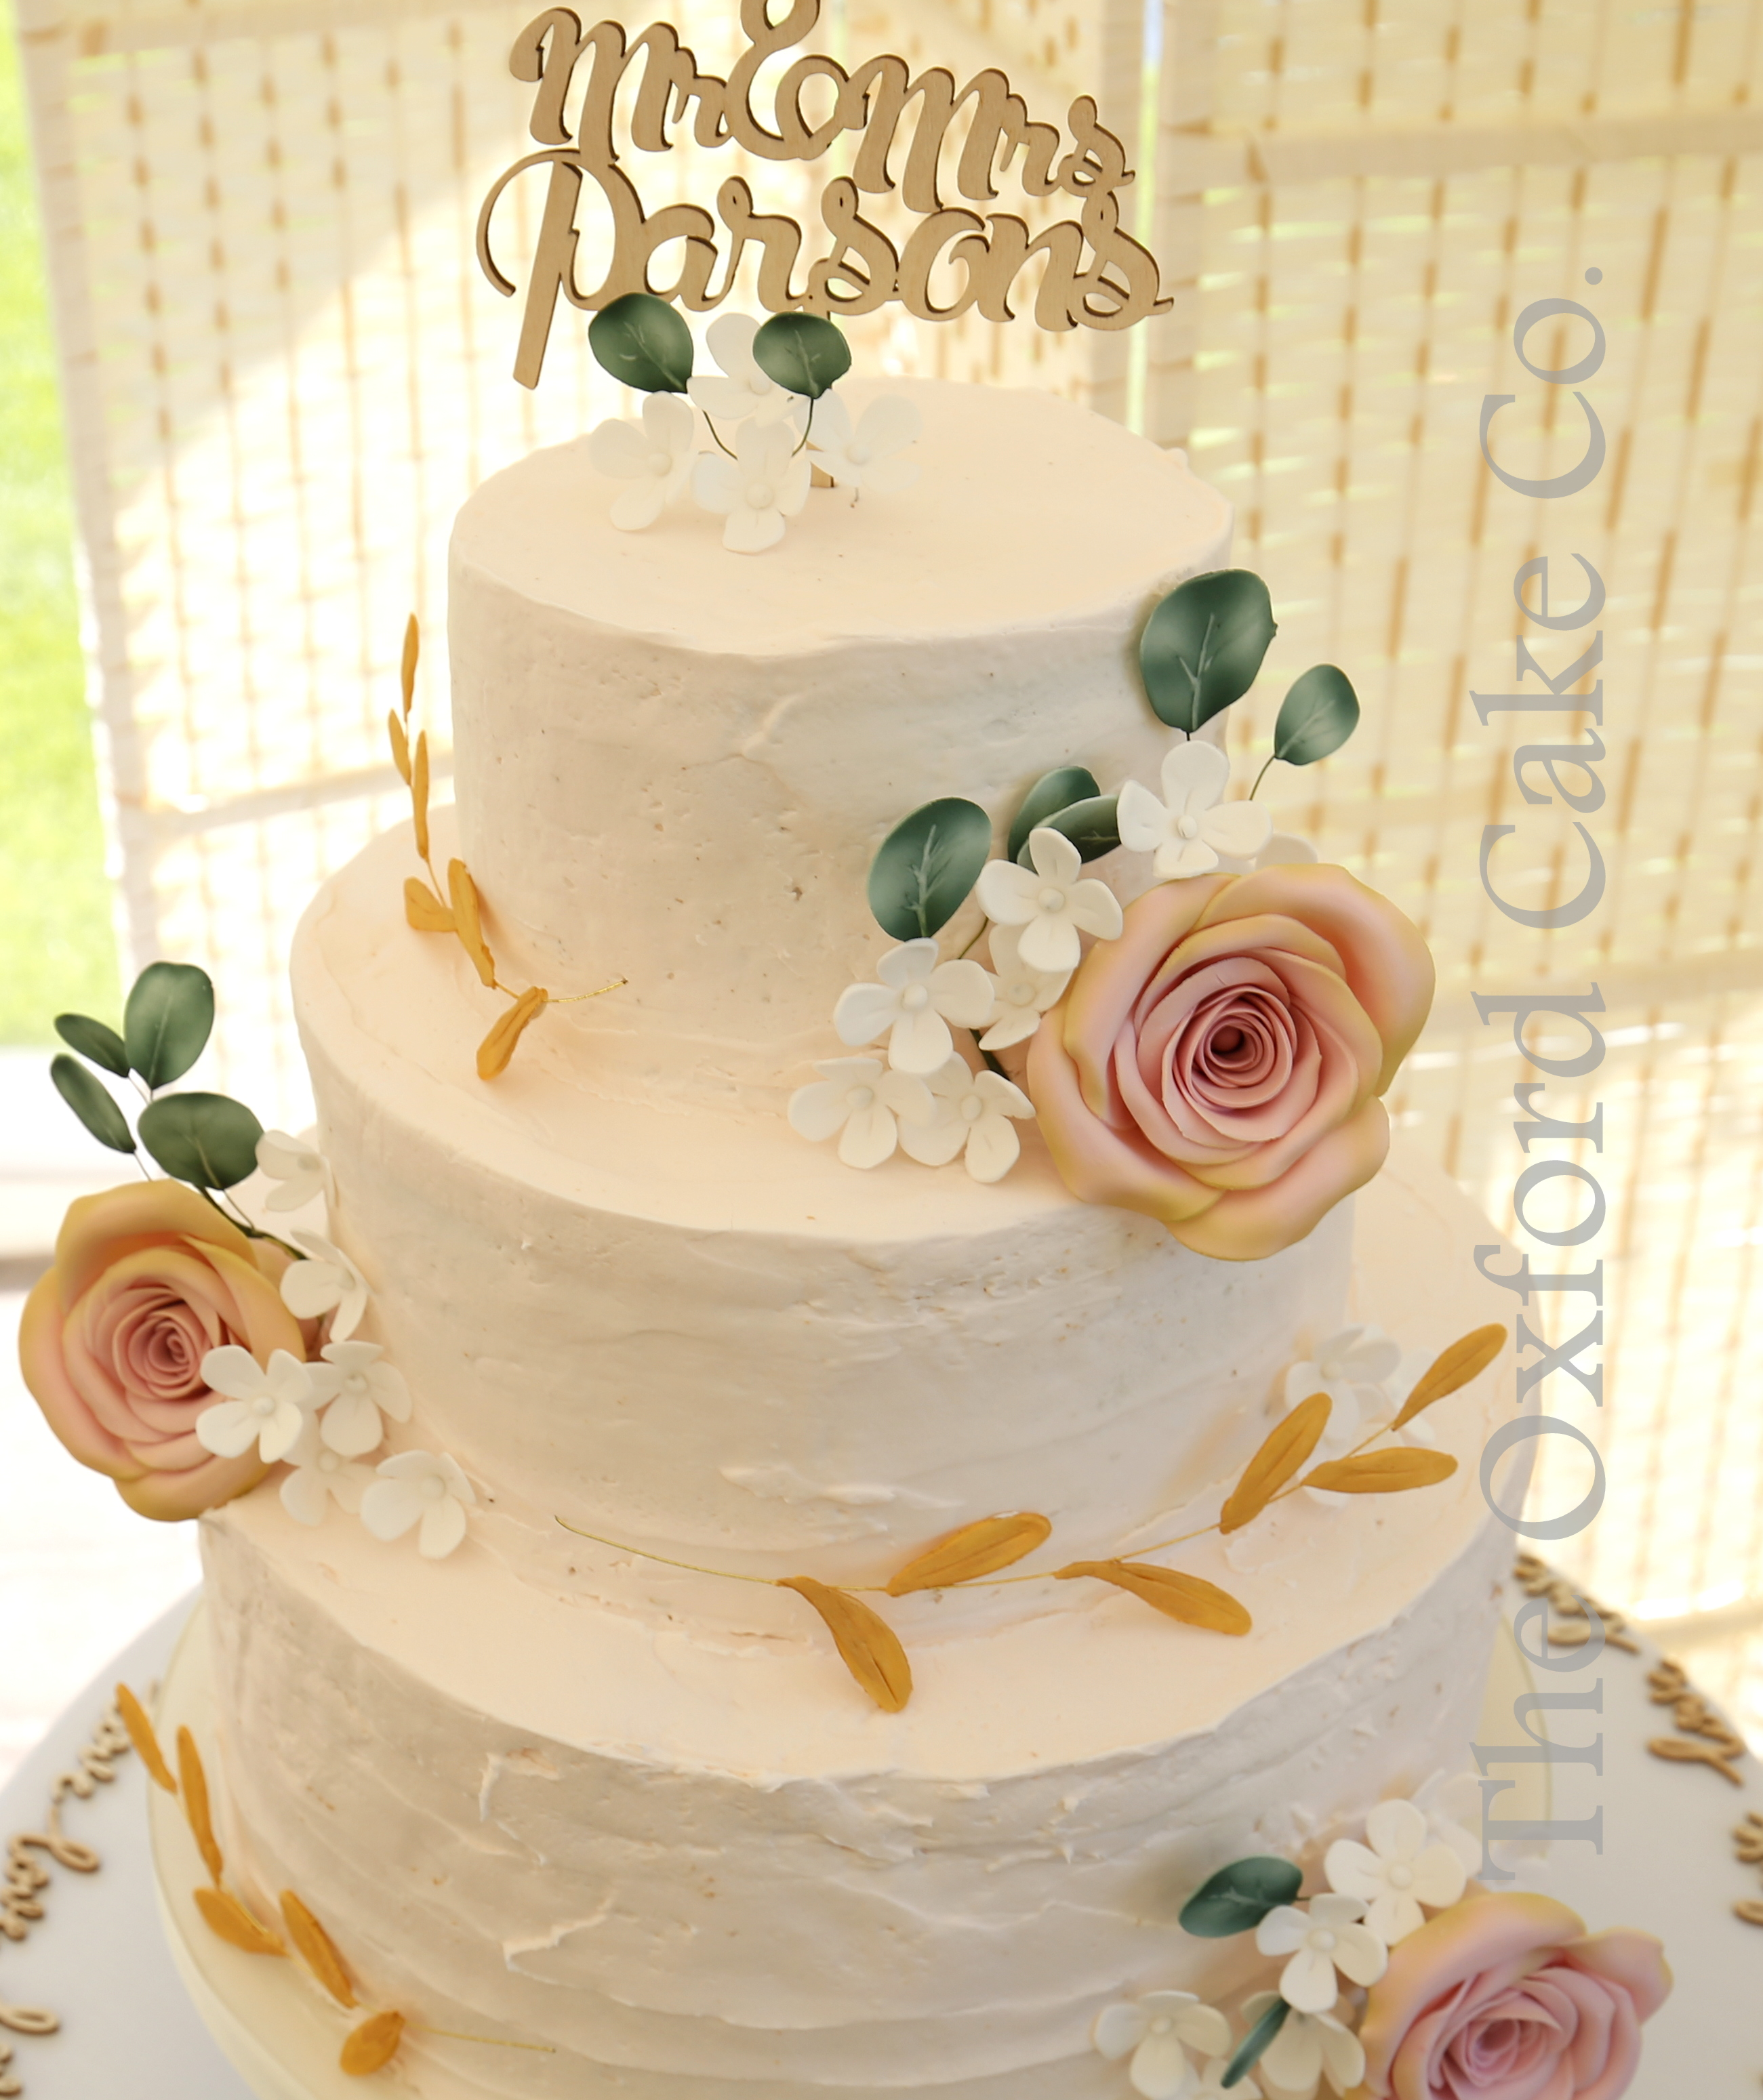 Christchurch Based Wedding Cake Makers: Oxfordshire Based Wedding And Event